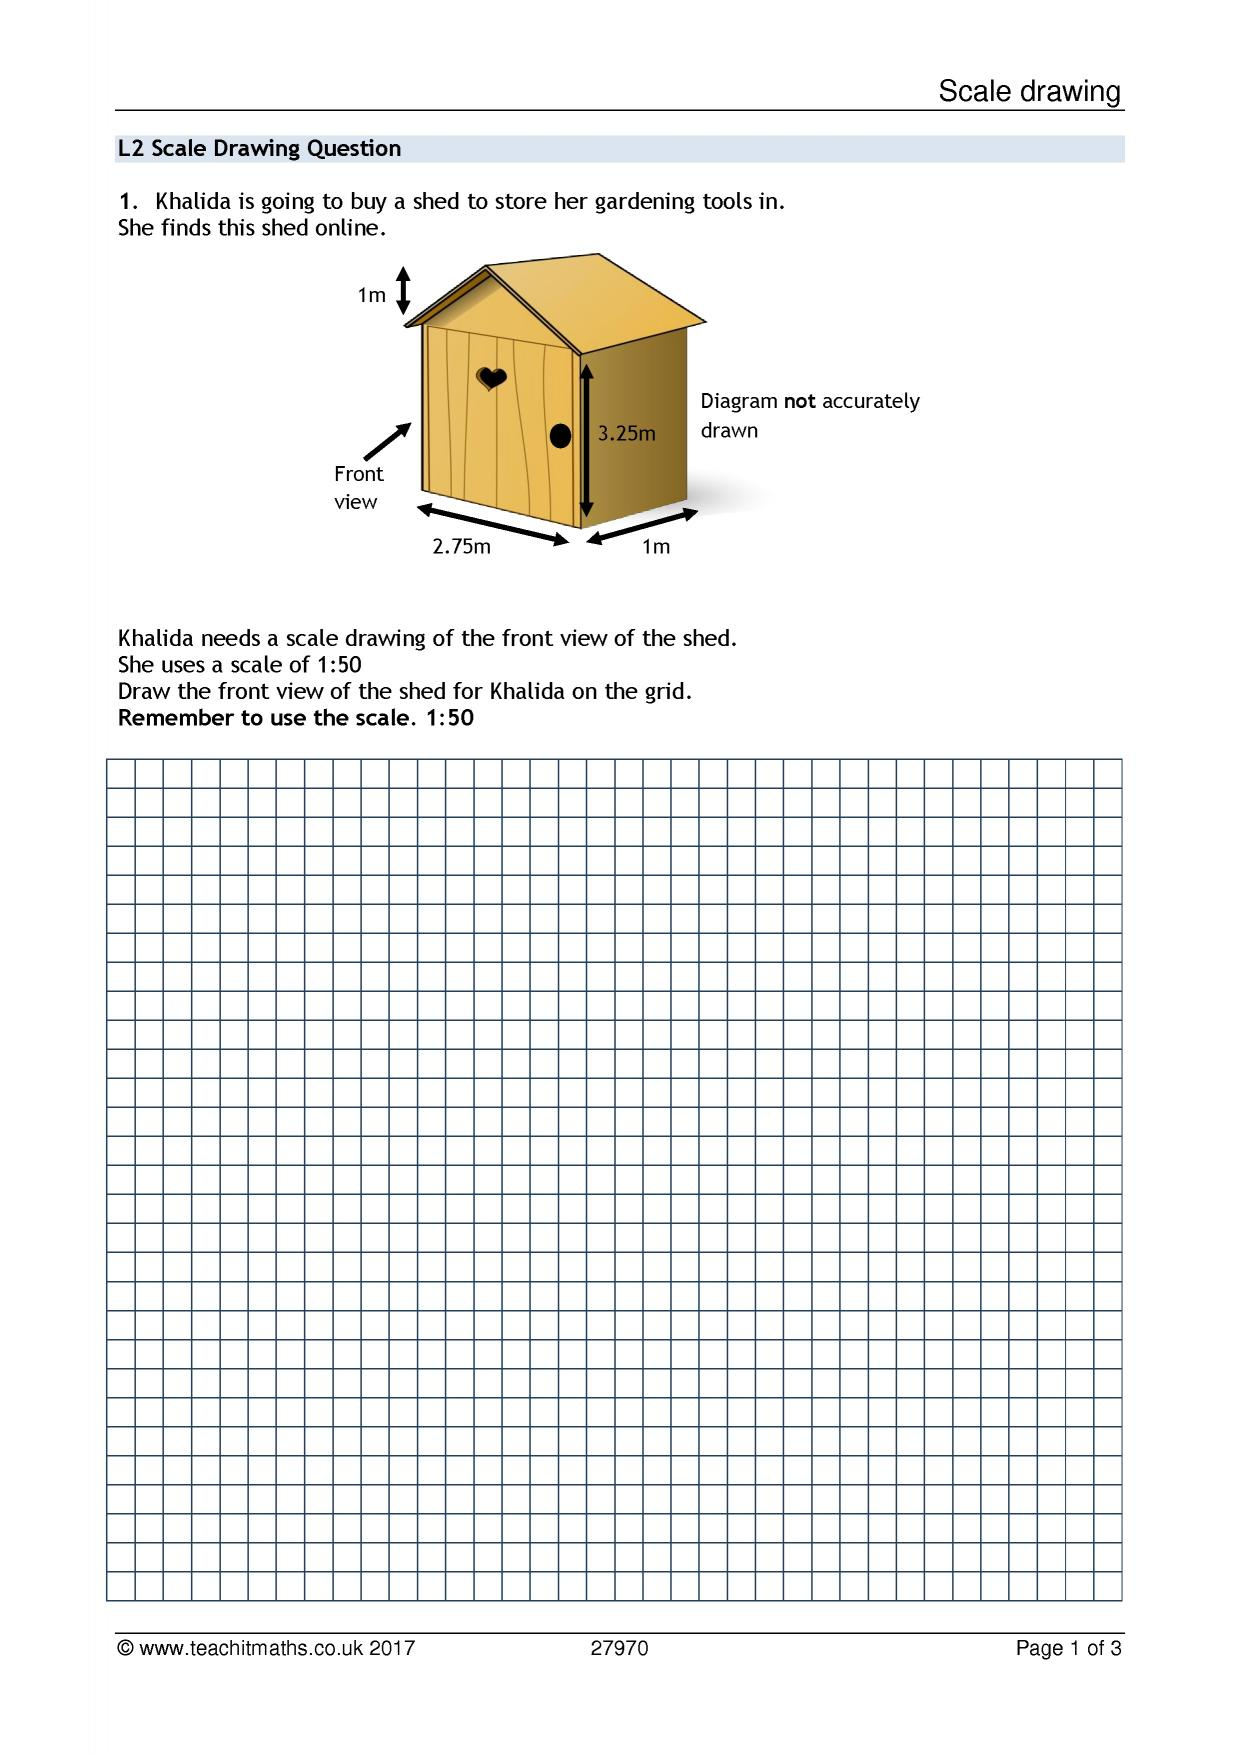 worksheets on scale drawings the best and most comprehensive worksheets. Black Bedroom Furniture Sets. Home Design Ideas